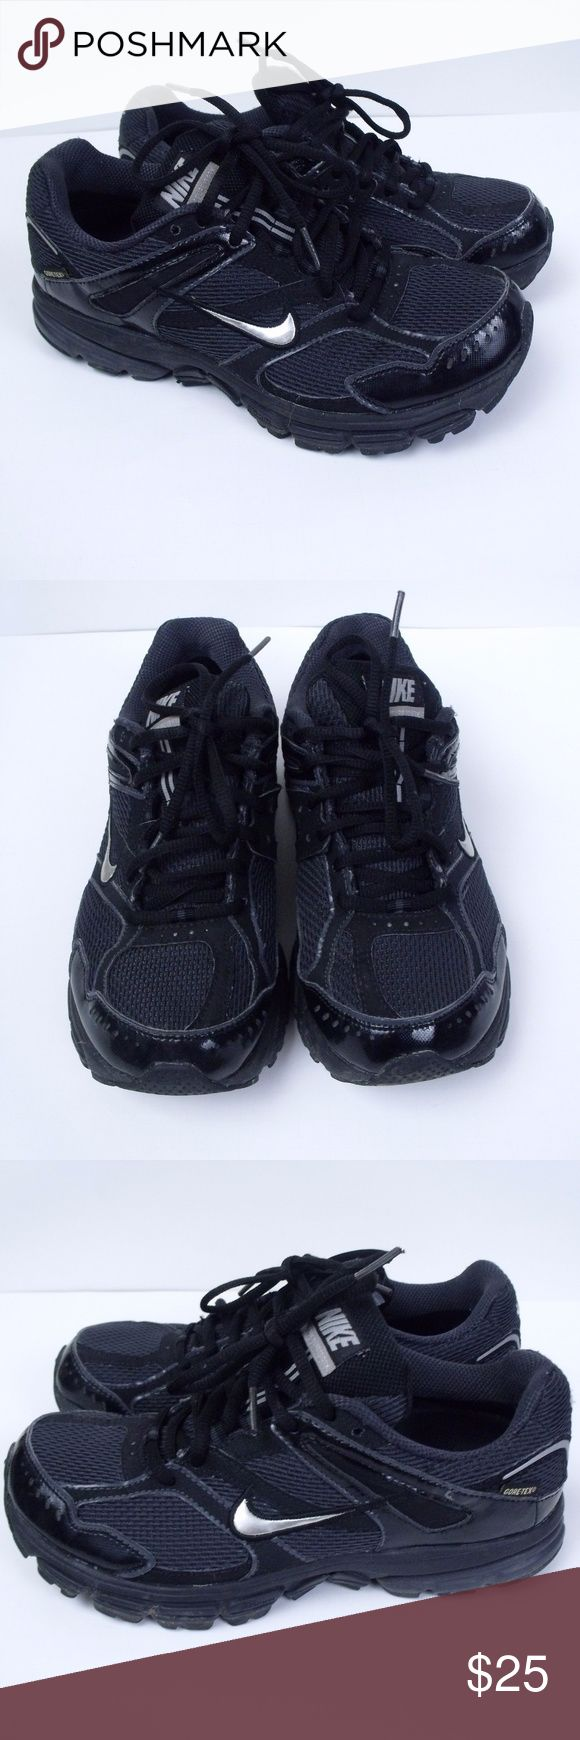 Nike Fitsole Zoom Gore-Tex Sneakers Size: 6.5  ~ Black Nike Fitsole, Gore-Tex, Zoom running shoes. ~ SKU# 407654-001 ~ Shoes are in gently used condition, no rips or tears. Nike Shoes Athletic Shoes